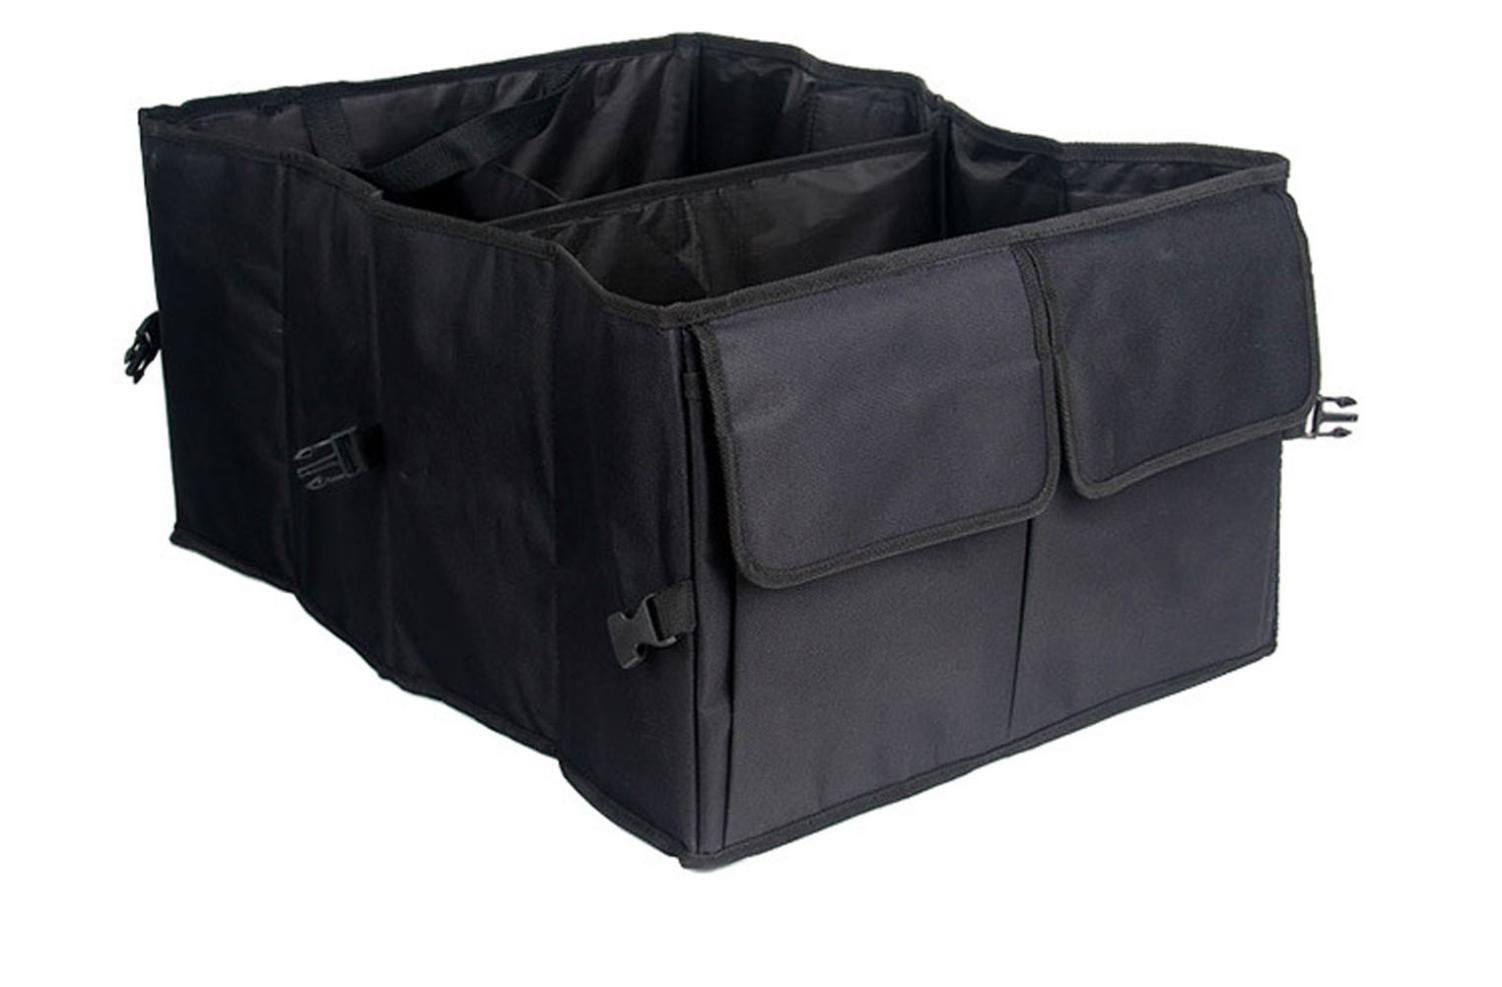 MQYH@ Car Trunk Organizer for Truck - Auto Durable Foldable Cargo Trunk Organizer Storage with Straps - Black 56 39 26.5CM